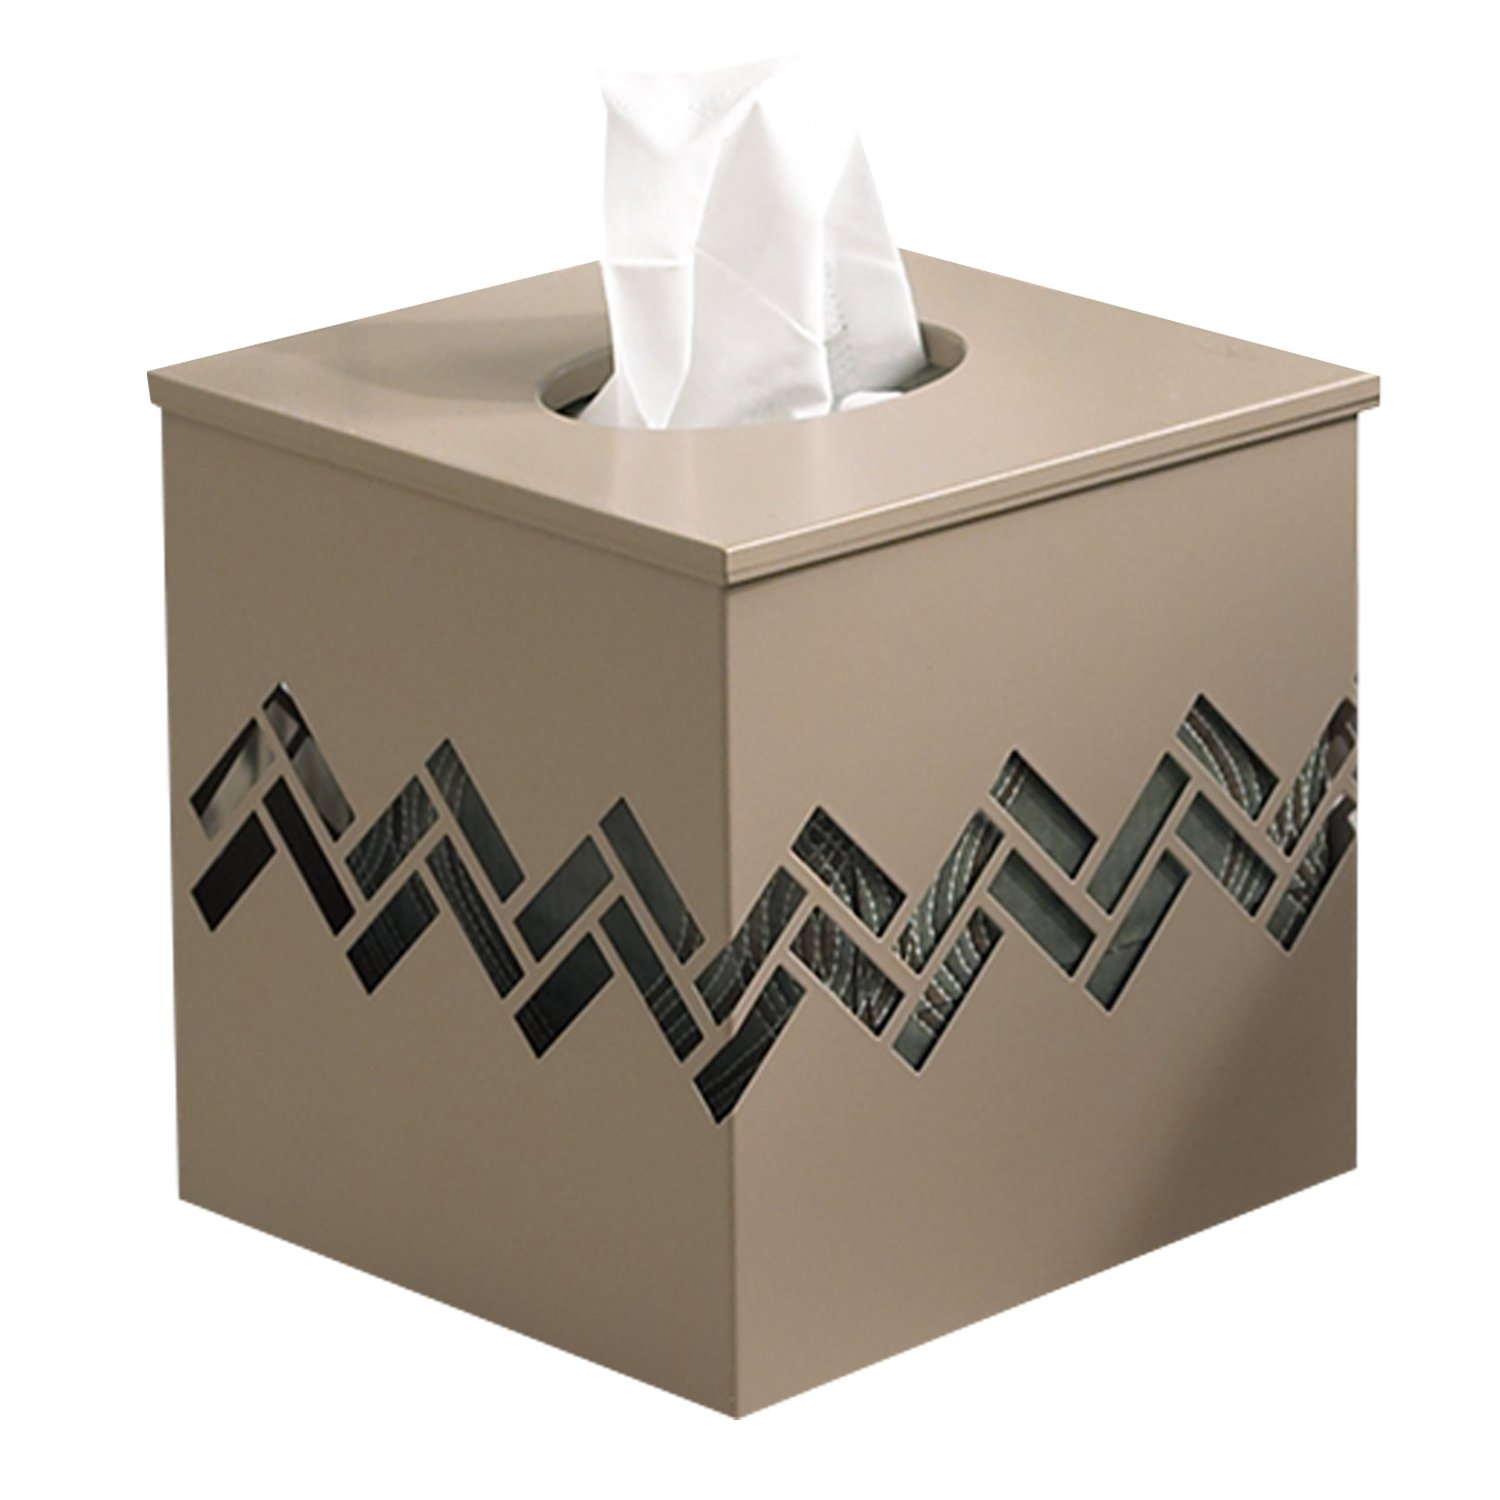 Comtelek Tissue Box Cover Square Tissue Holder Wooden Rustic Torched Bathroom Facial Tissue Dispenser with Slide-Out Bottom Panel White Novelty Splicing Napkin Holder Square